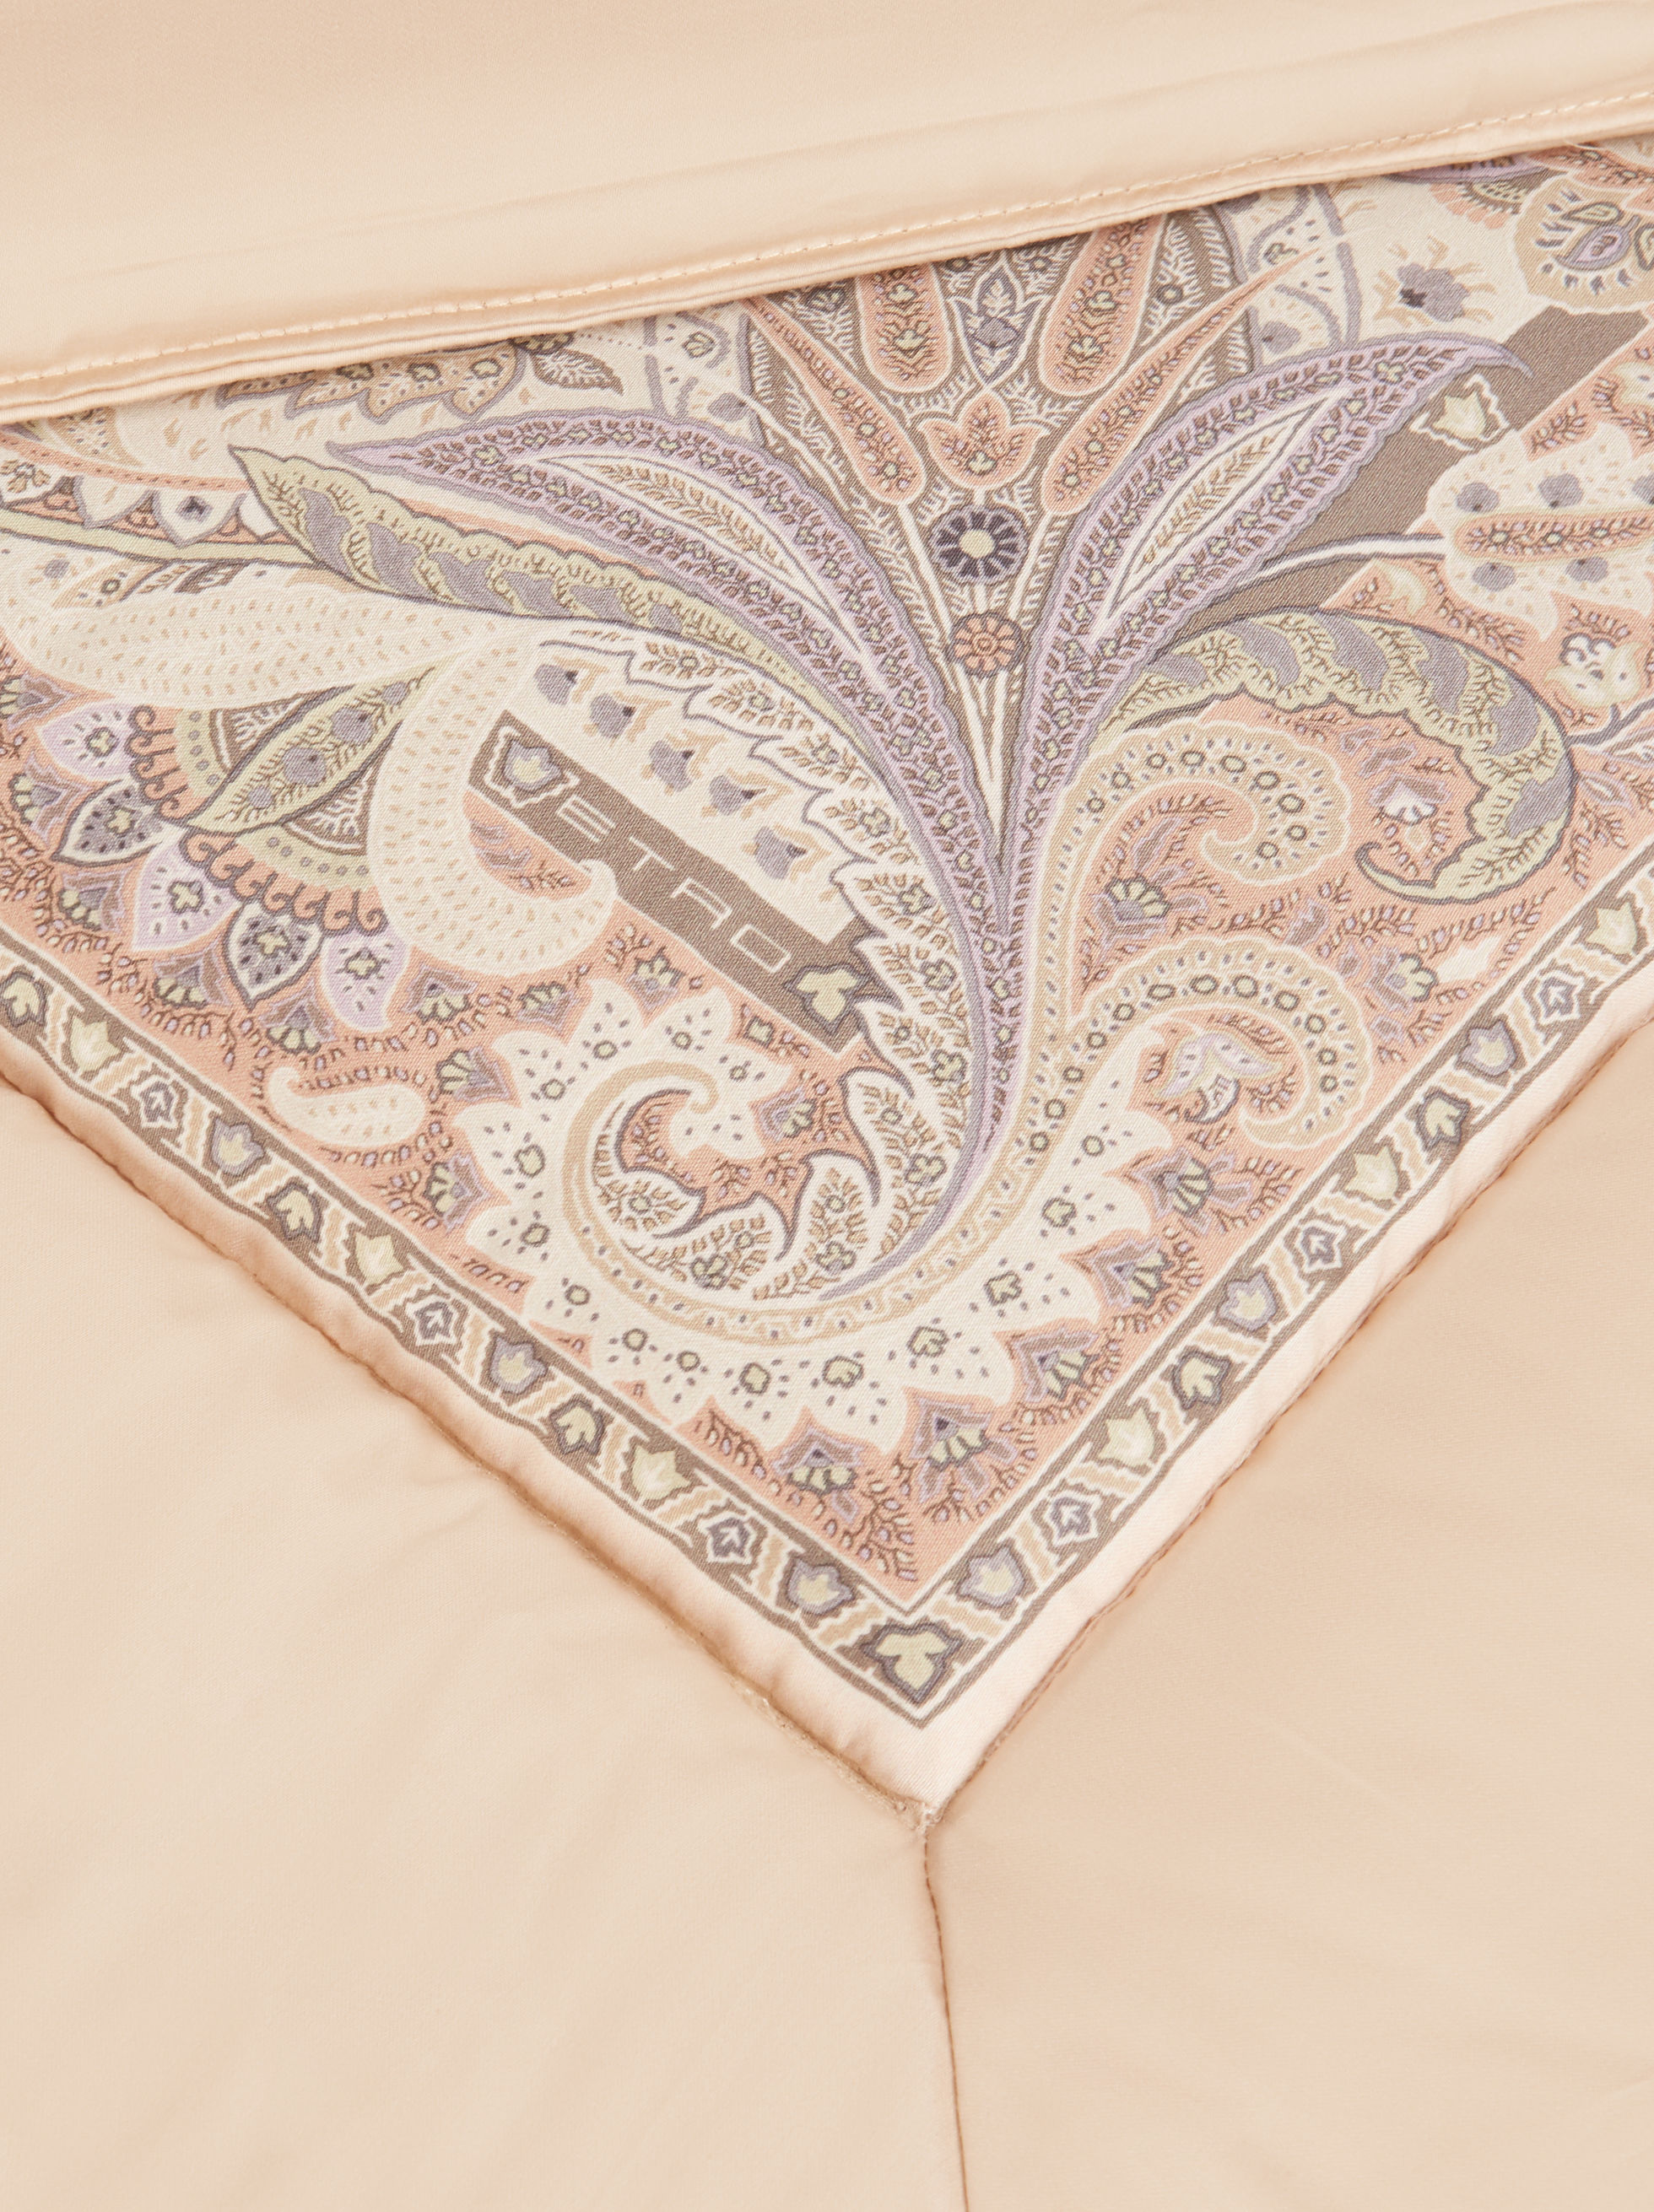 SATEEN QUILT WITH LEAFY PAISLEY DECORATIONS